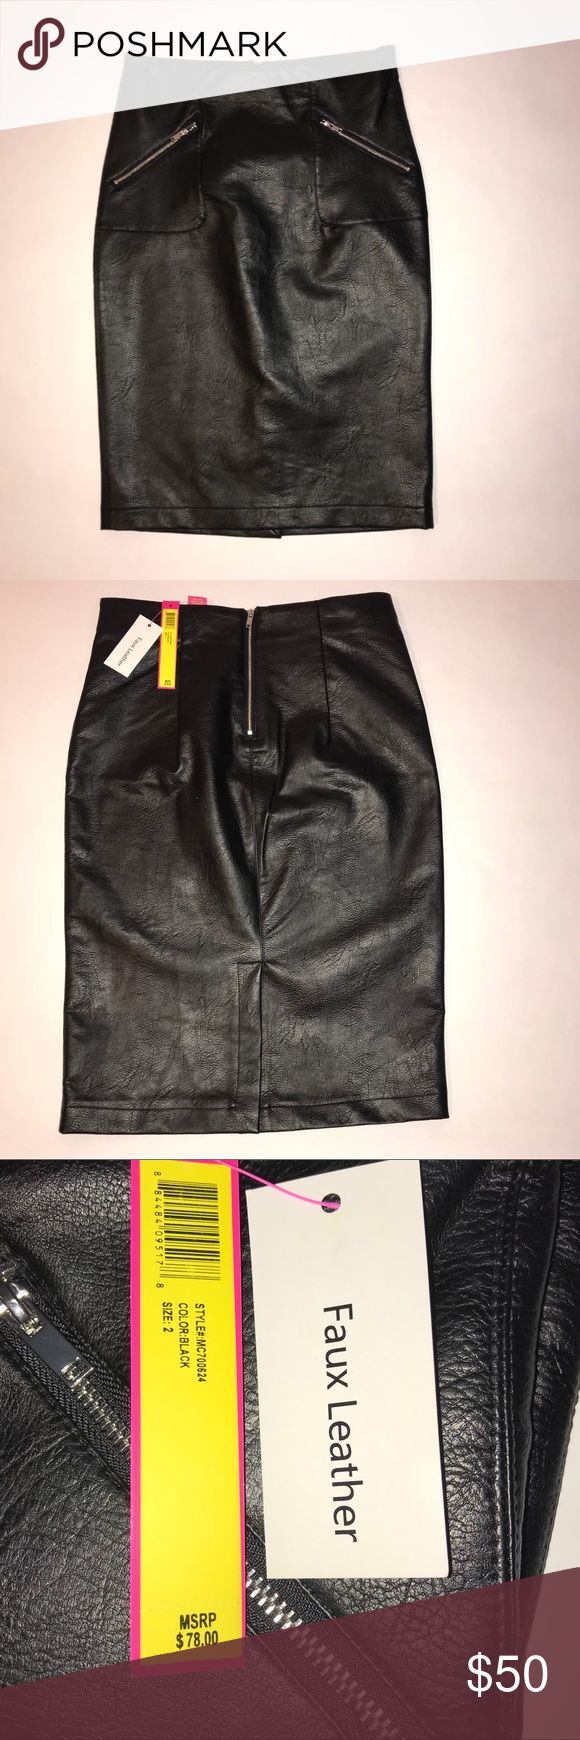 """Catherine Malandrino faux leather pencil skirt NWT Beautiful black faux leather Catherine Malandrino pencil skirt, size 2, NWT, has 2 stylish zippers on front of the skirt, and zipper on the back, and a 7.5 inch slit on back. Measurements are : waist is 15"""", across the hips is 18.75"""", and top to bottom 24.5"""" Catherine Malandrino Skirts Pencil"""